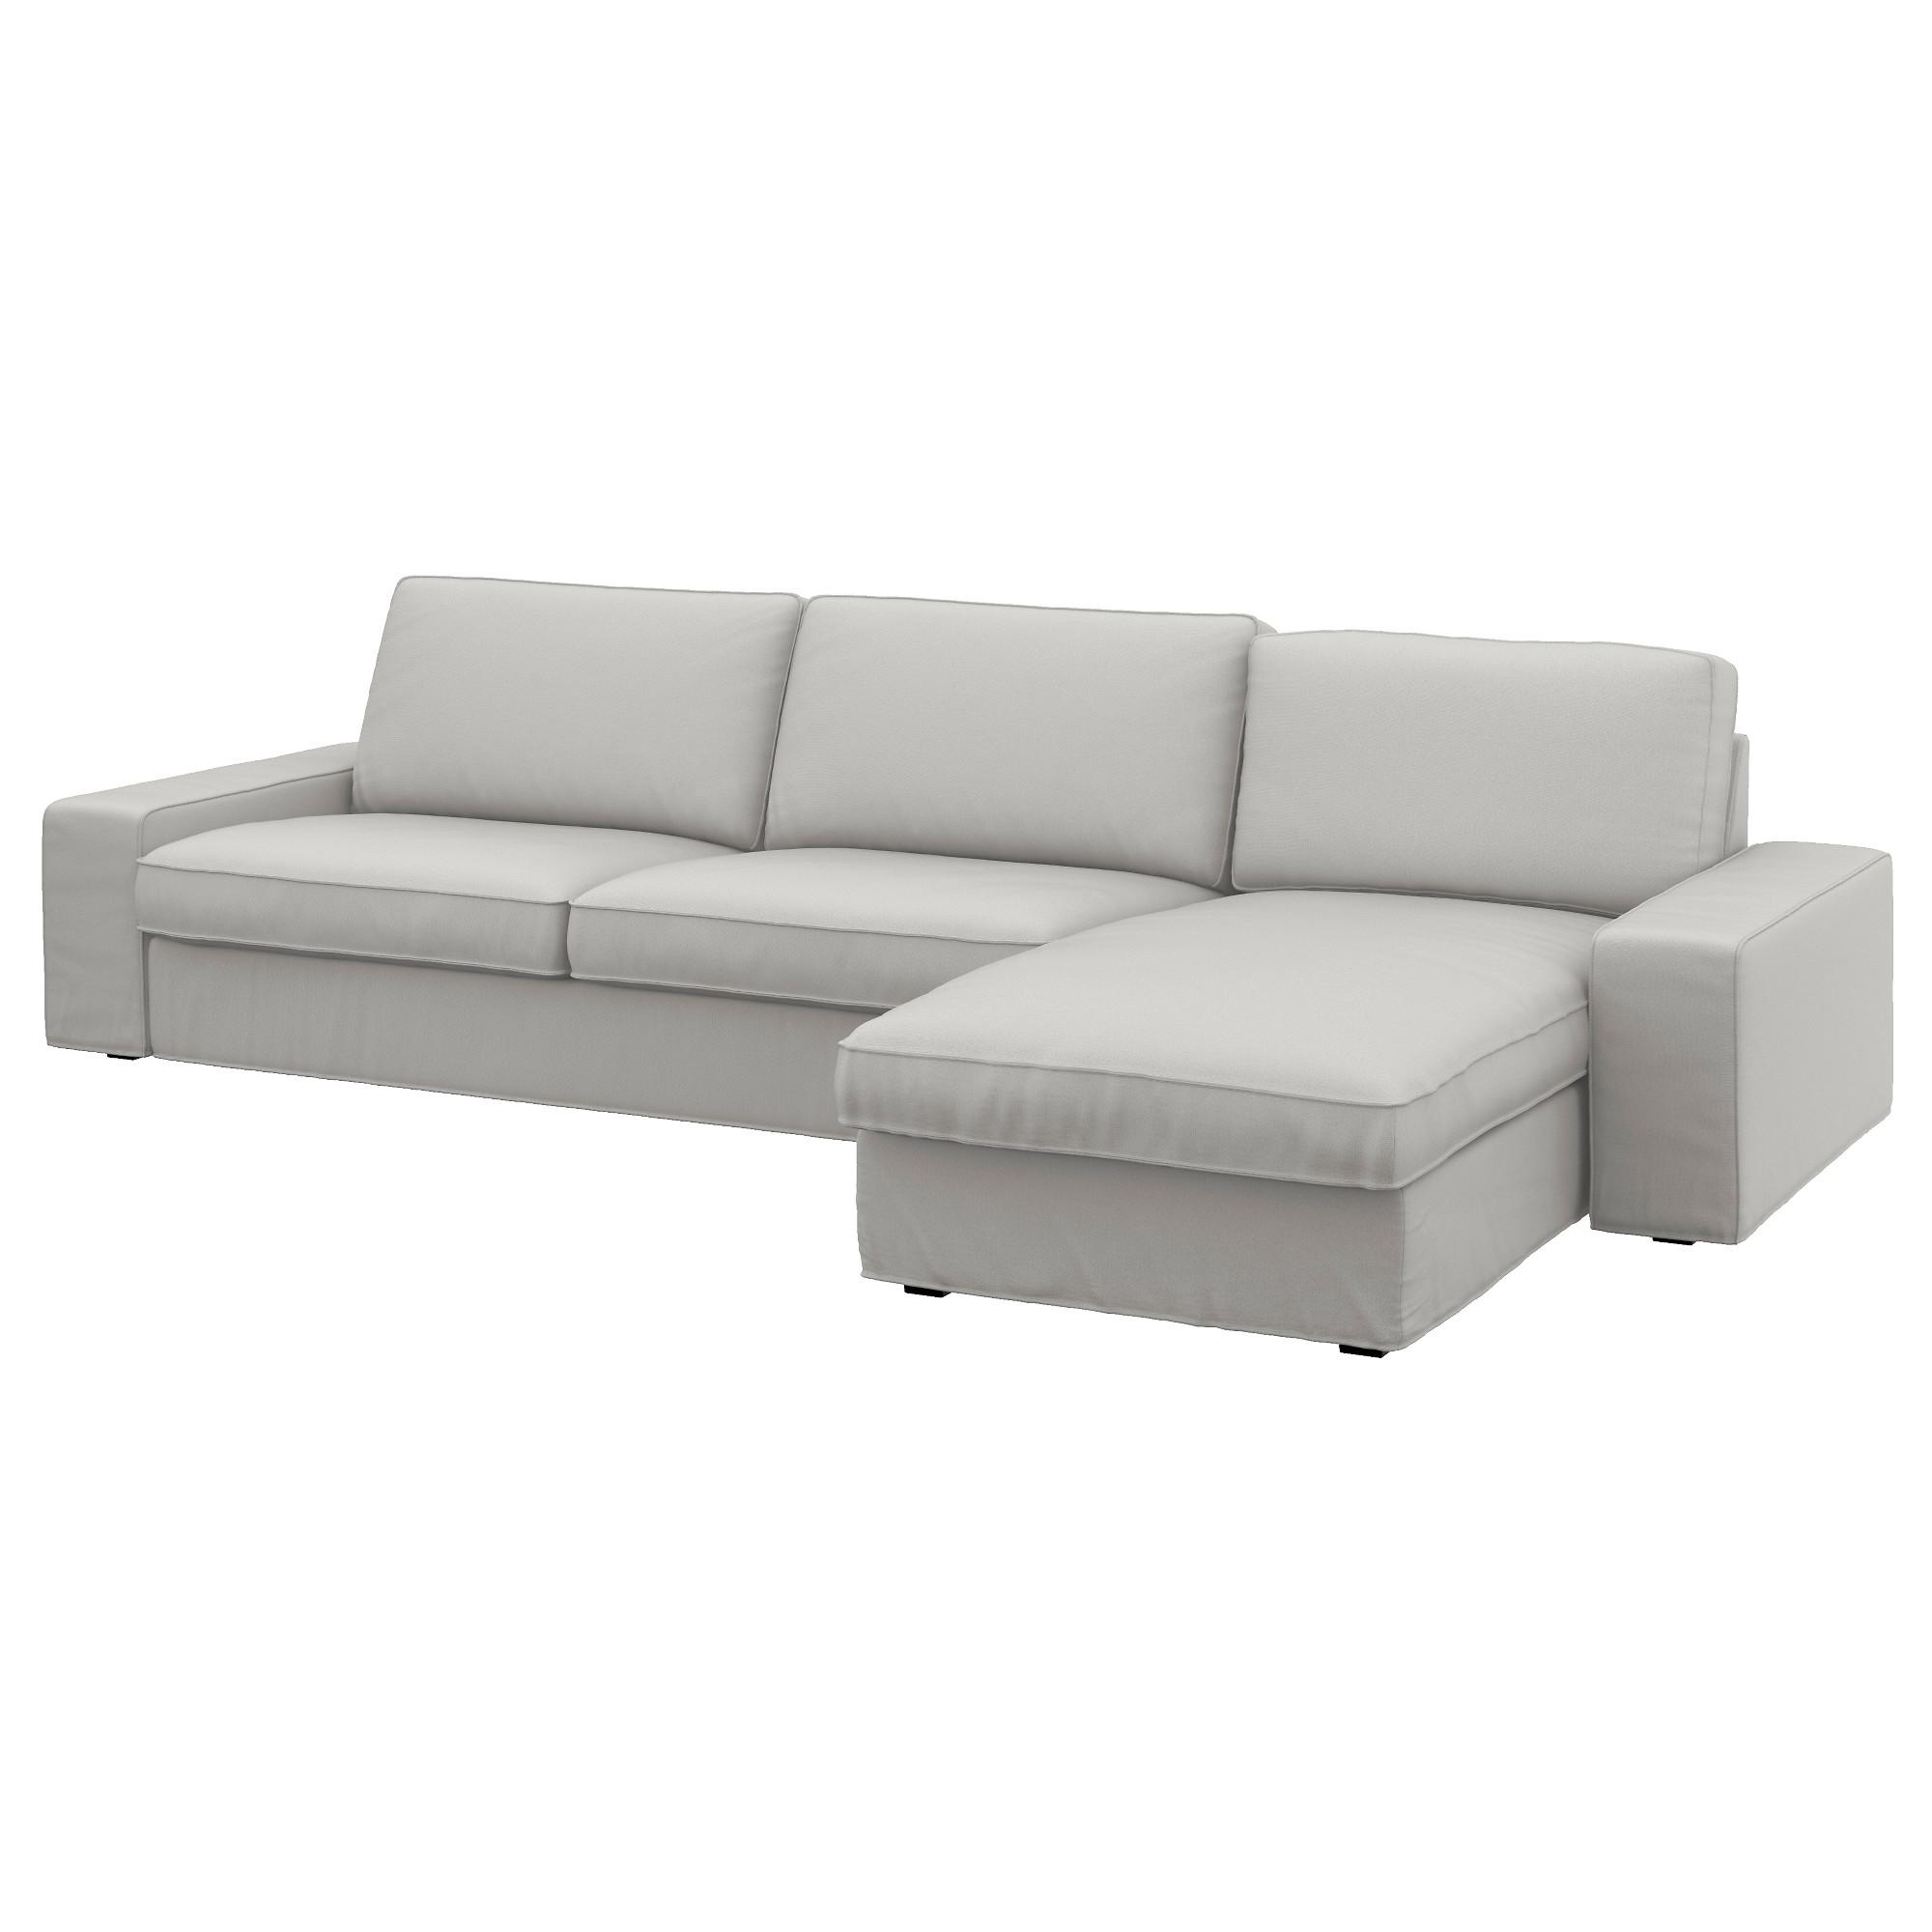 Kivik 4 Seat Sofa With Chaise Longue/ramna Light Grey – Ikea Within Ikea Chaise Lounge Sofa (Image 13 of 20)